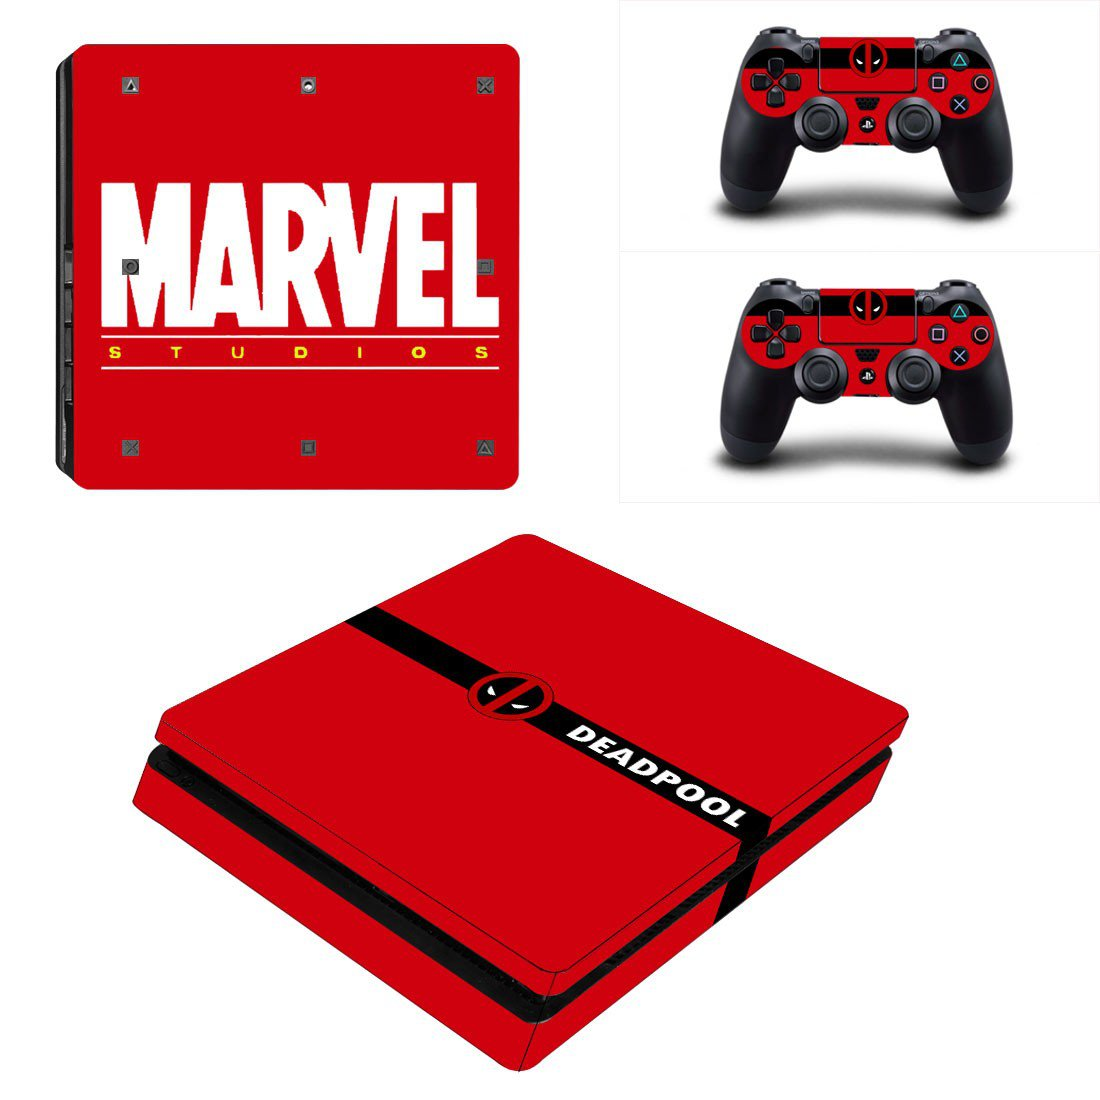 Marvel Studios and Deadpool Play Station 4 slim skin decal for console and 2 controllers